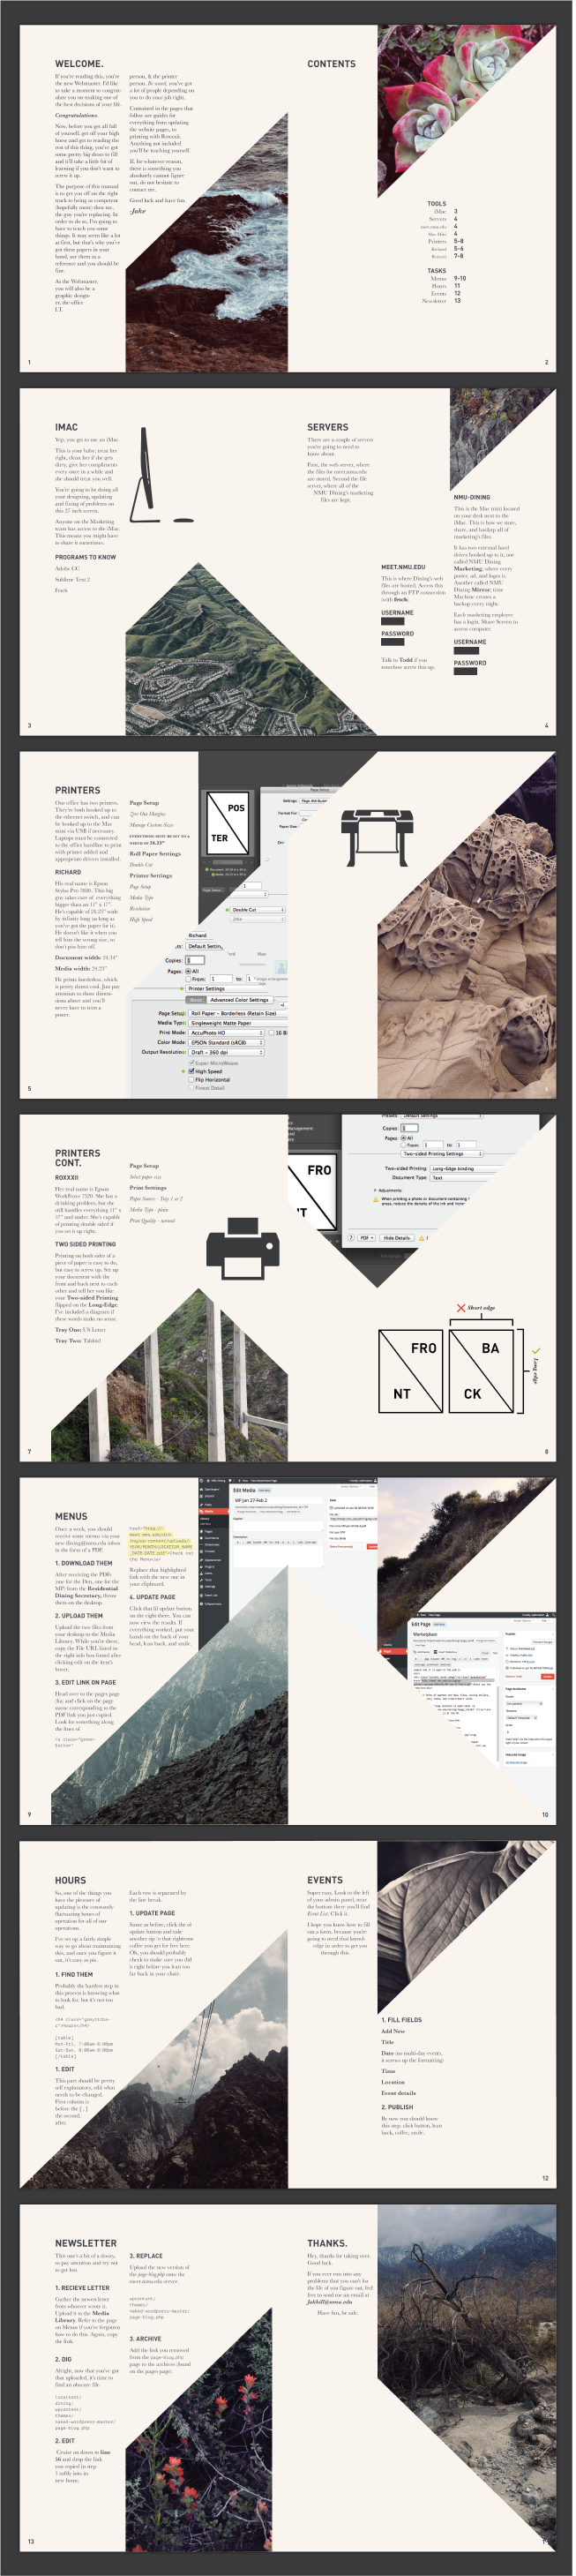 Designed by Jake Hill. I am inspired by the angled cropping of the images. It creates great eye movement, and visual interest. There's a great balance of negative and positive space throughout the layouts.